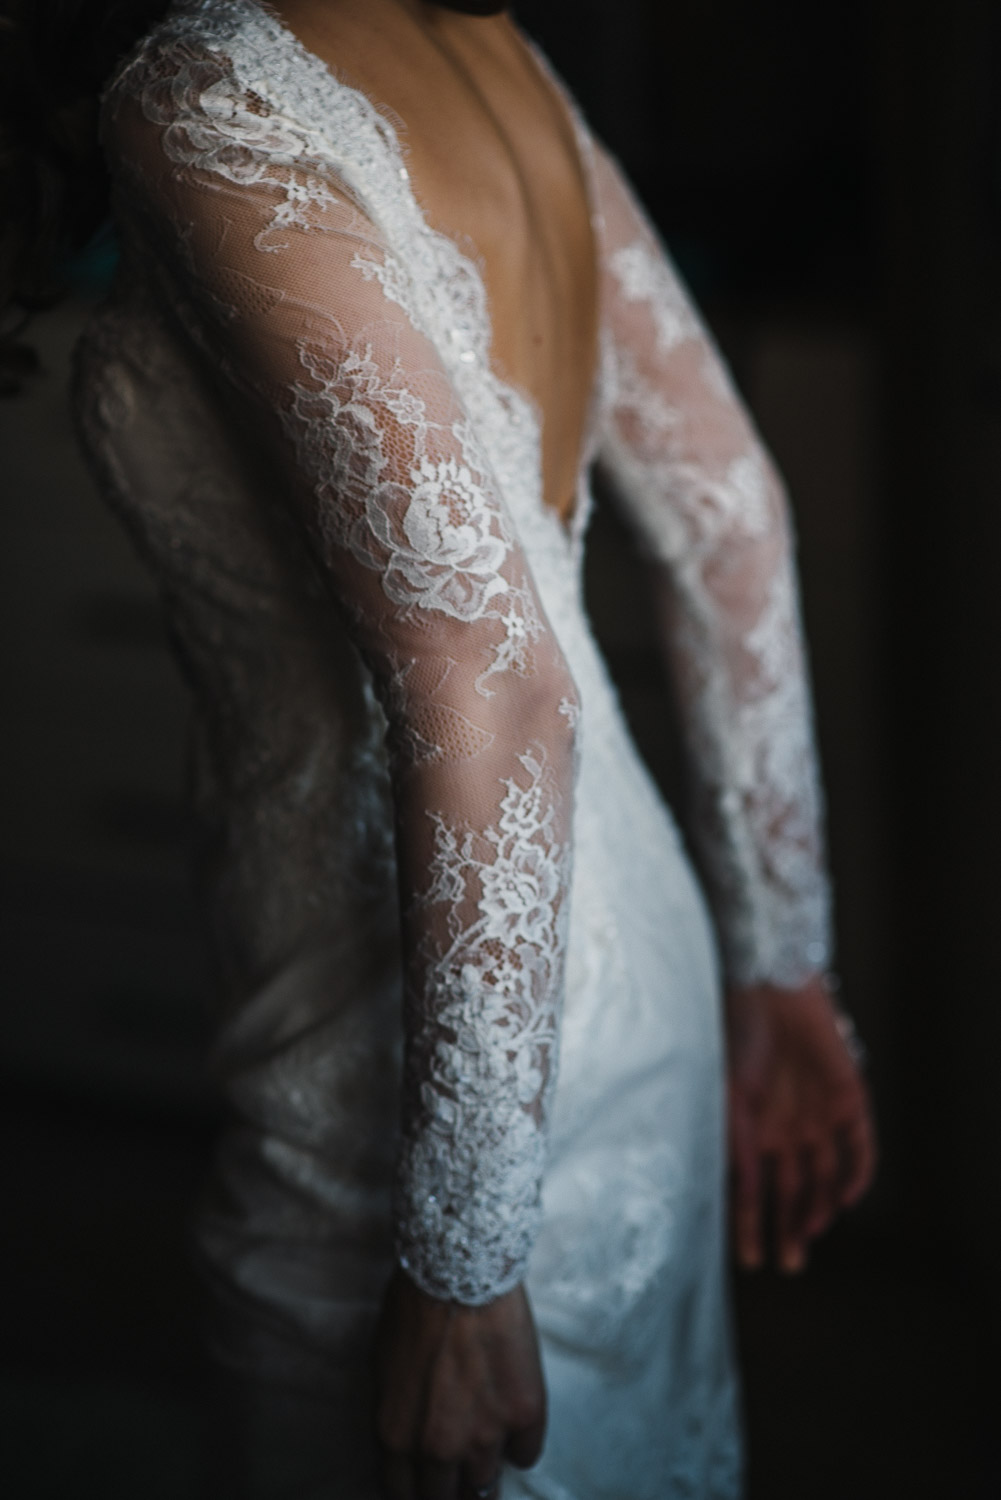 backless lace dress detail by creative and alternative london wedding photographer the shannons photography